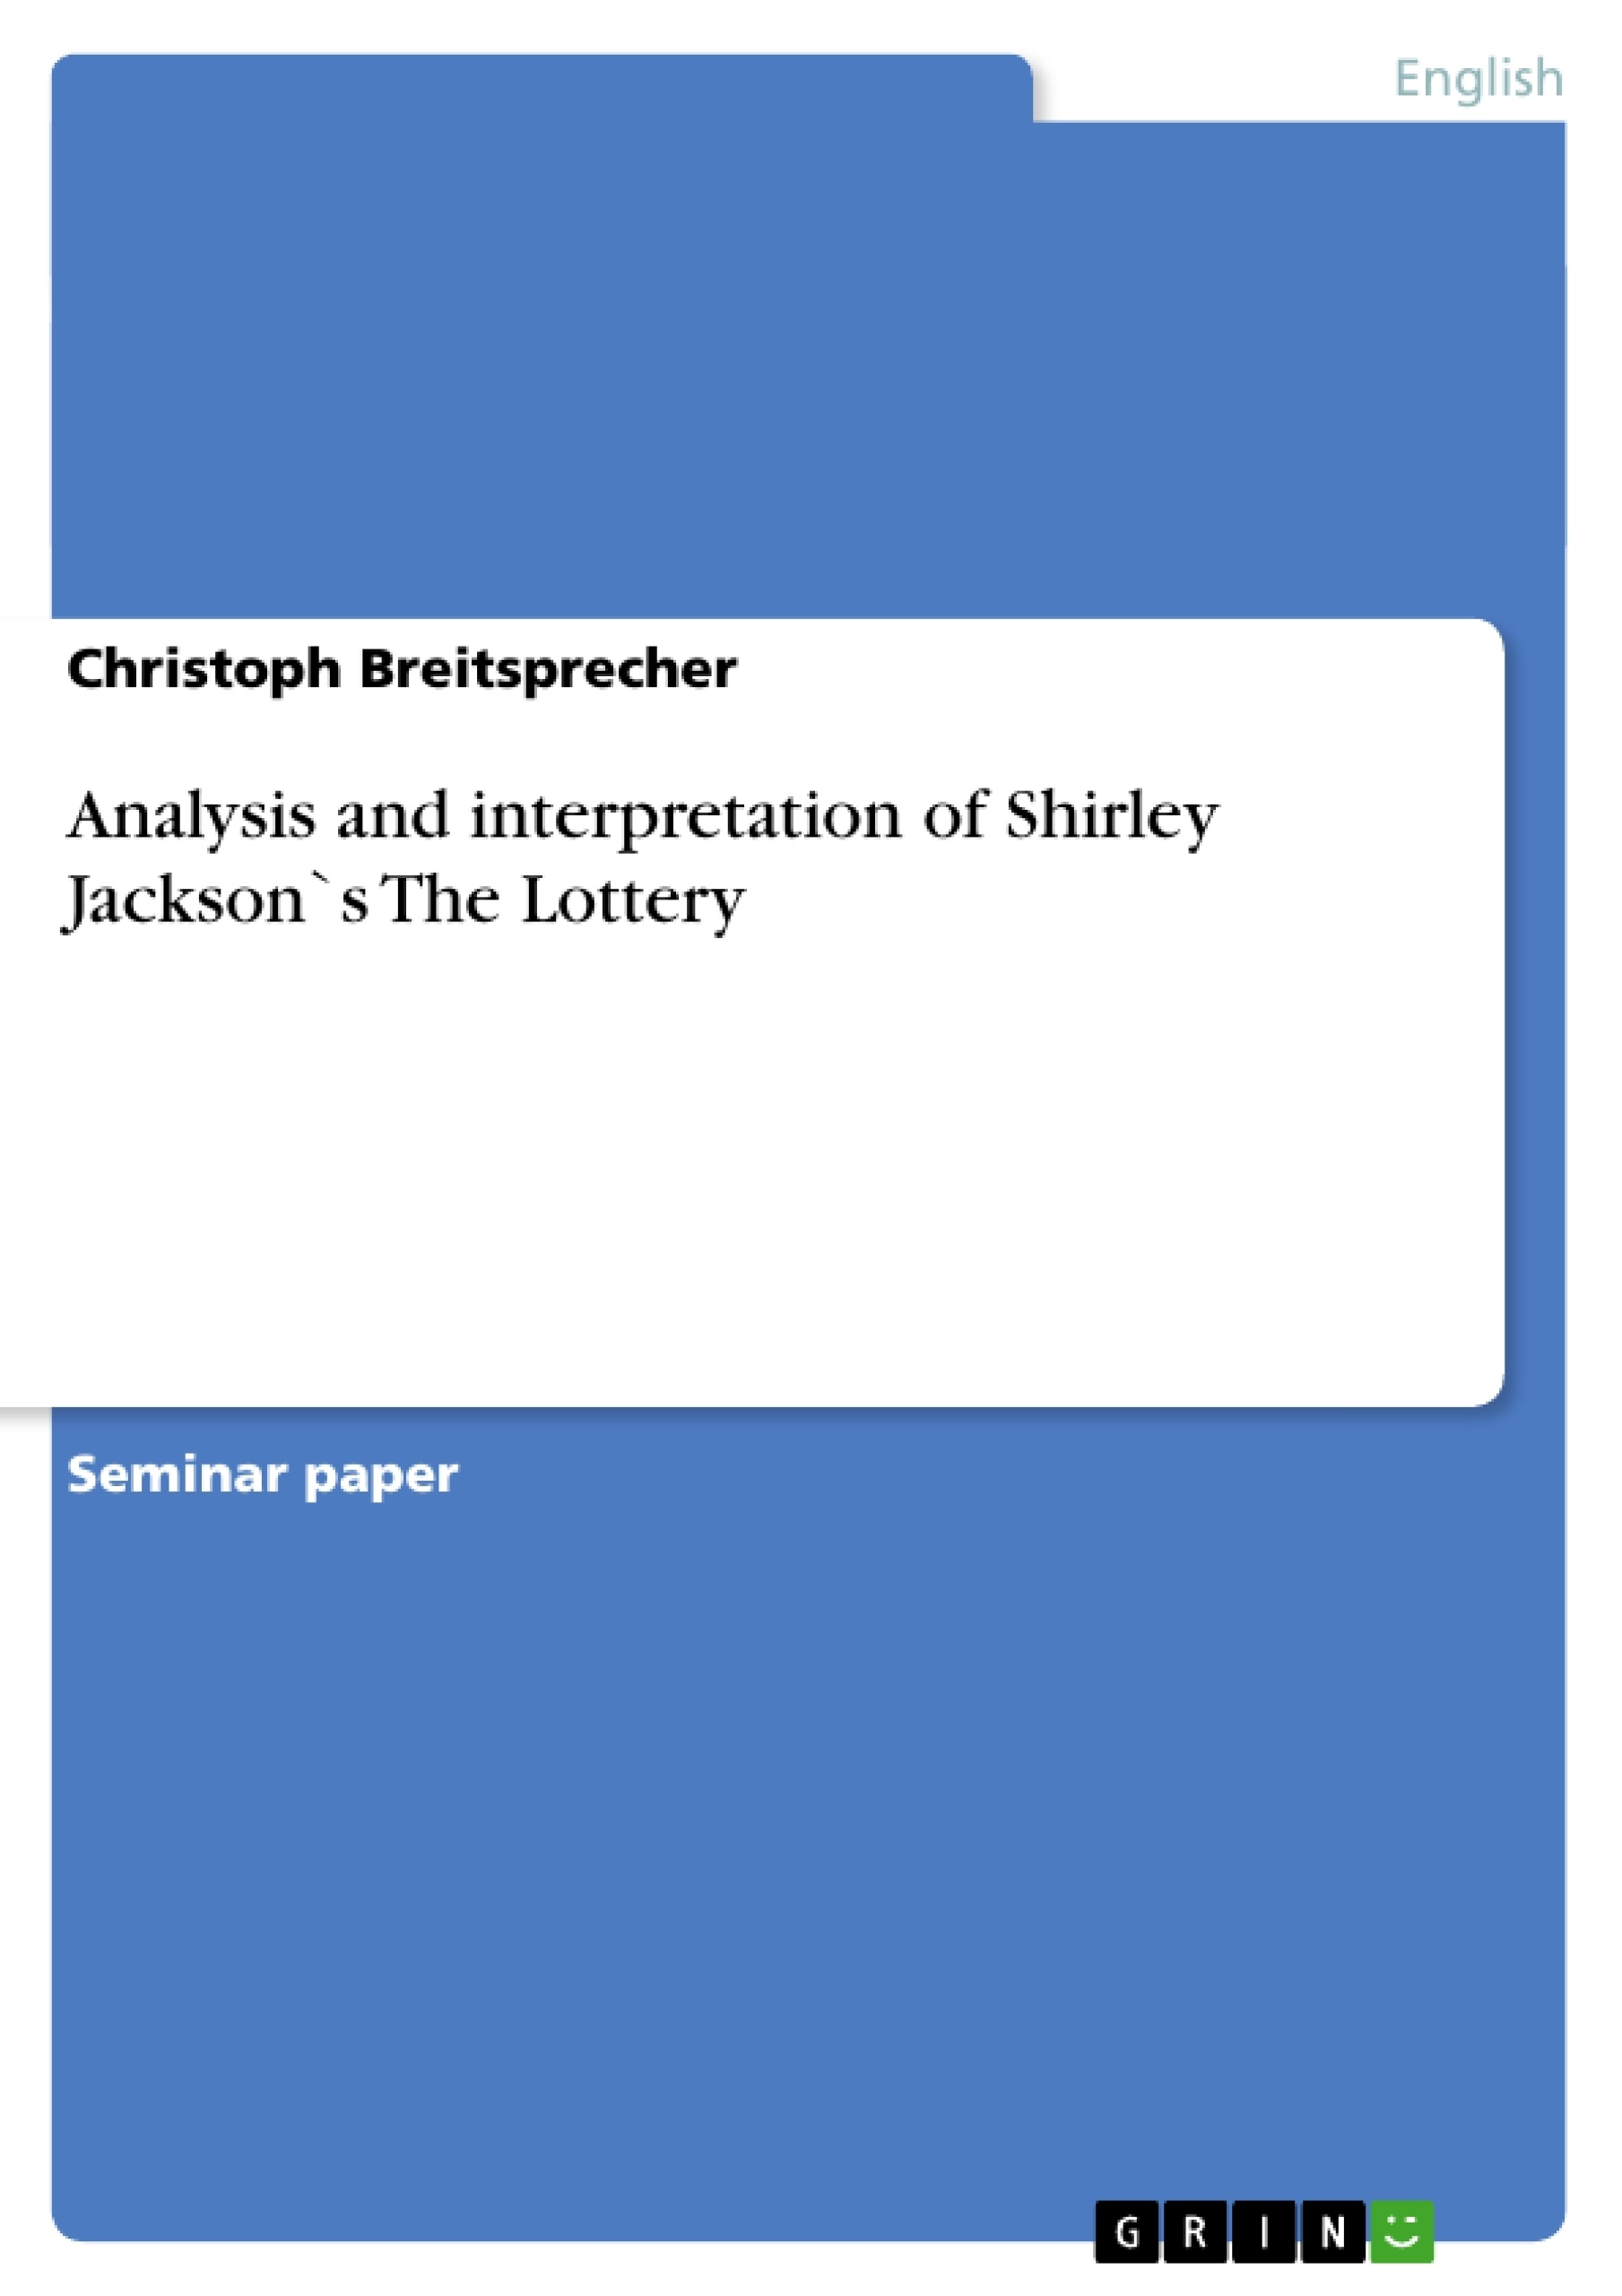 Literary analysis essay on the lottery by shirley jackson